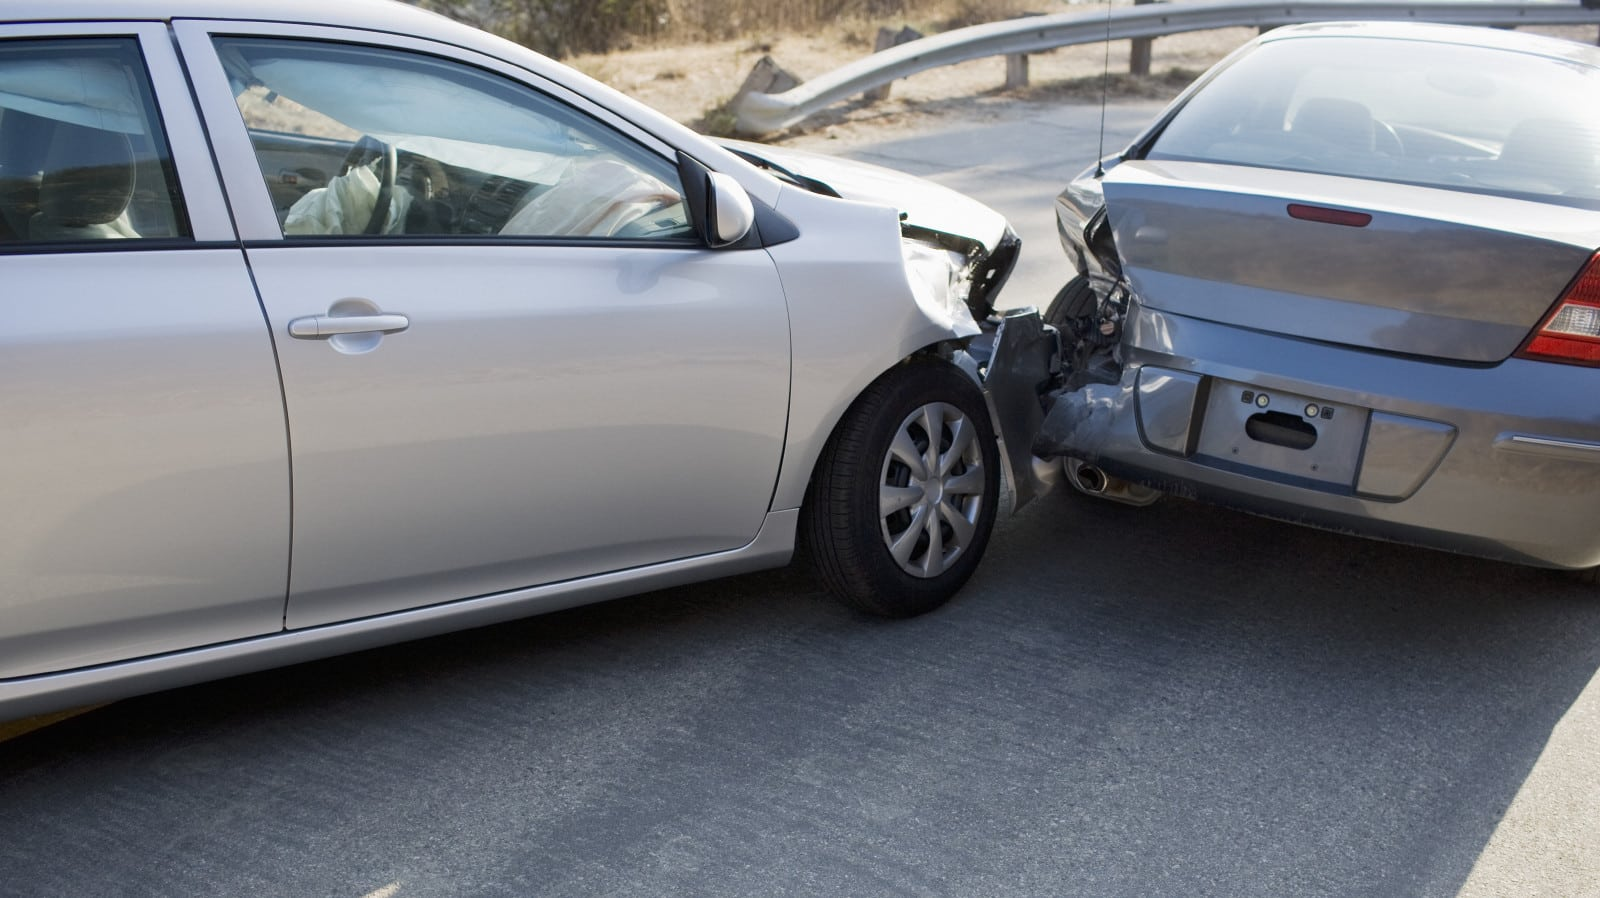 Car Accident - Rear End Accident